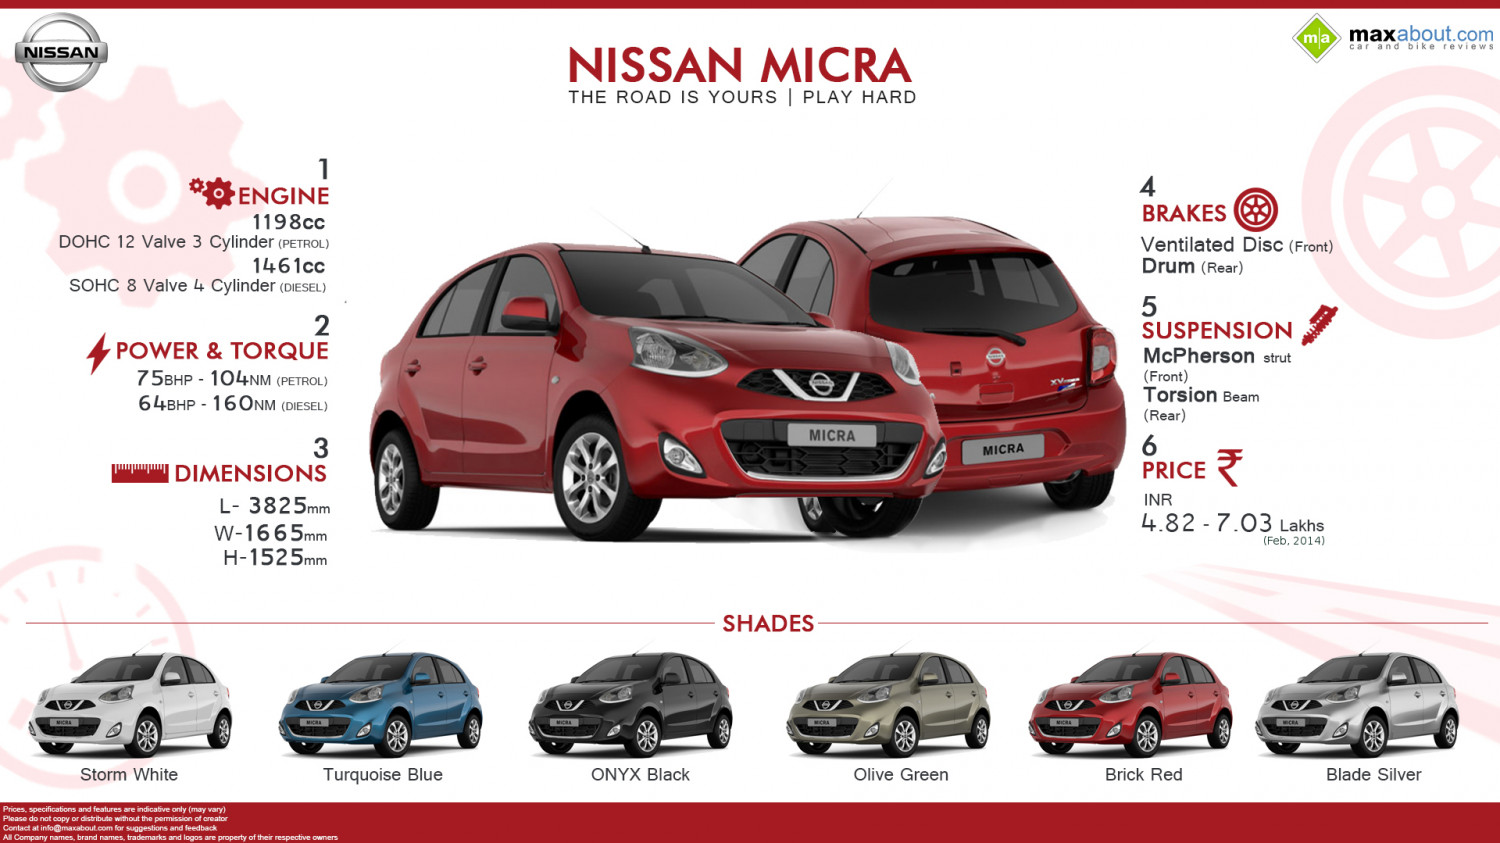 Nissan Micra - The Road is Yours | Play Hard Infographic